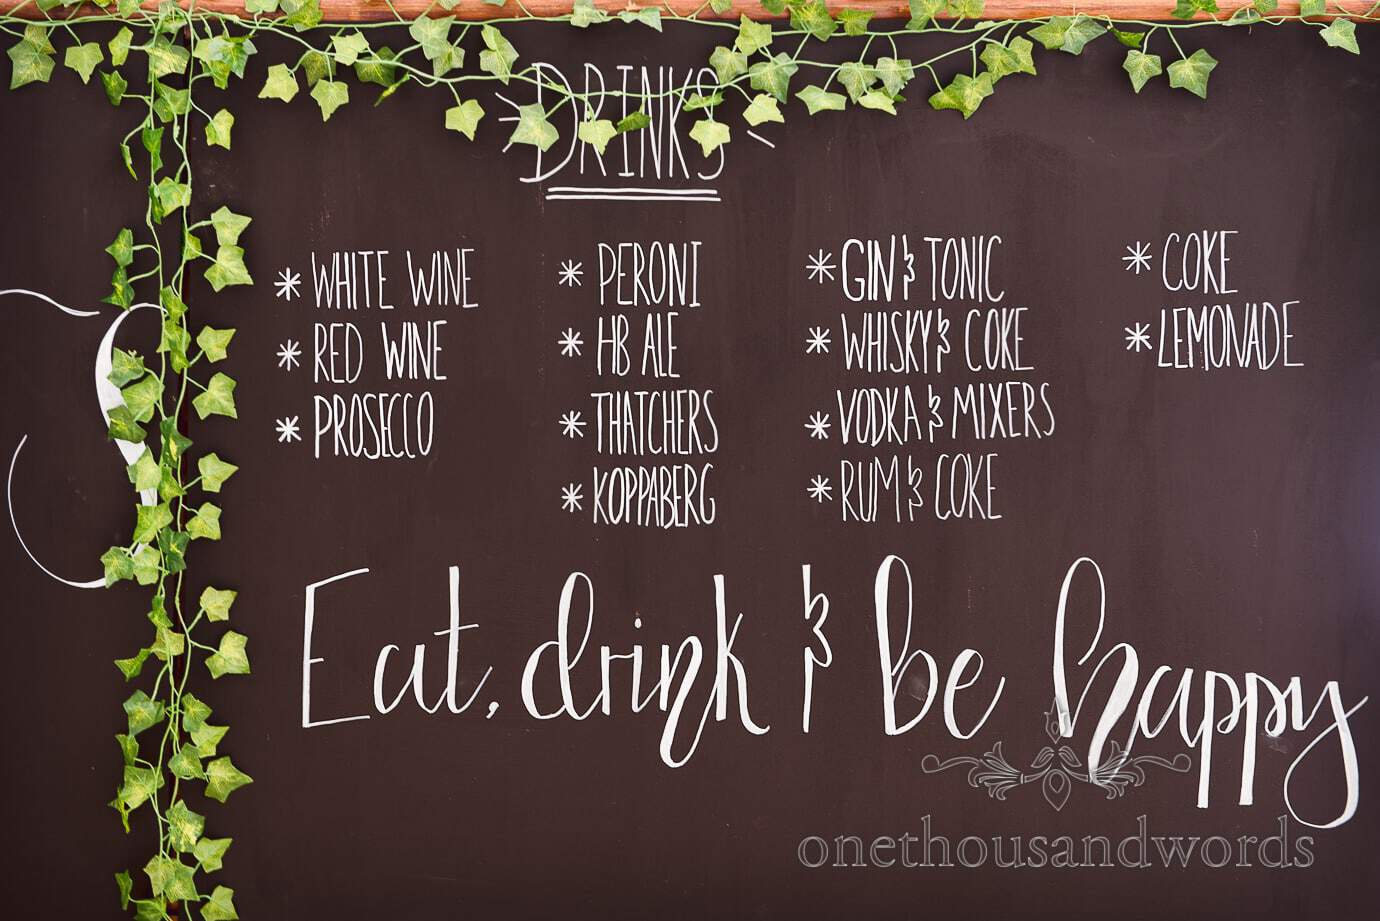 Country wedding bar menu on chalkboard with ivy Eat Drink & Be Happy sign